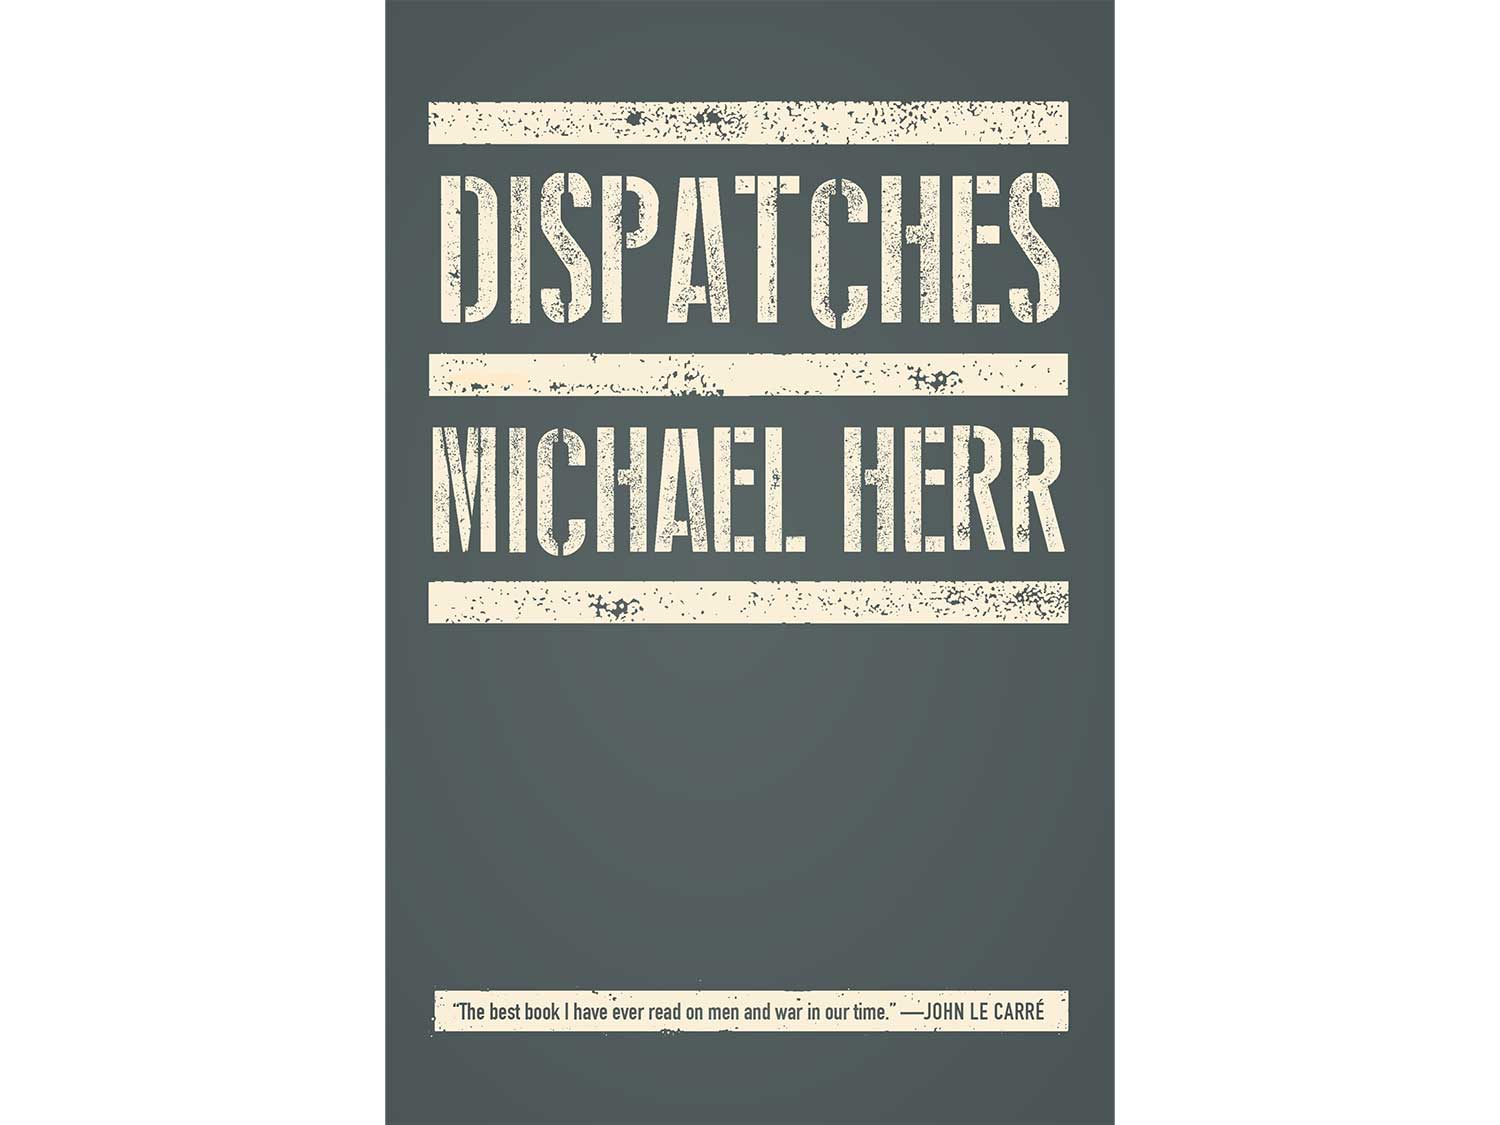 _Dispatches_, by Michael Herr